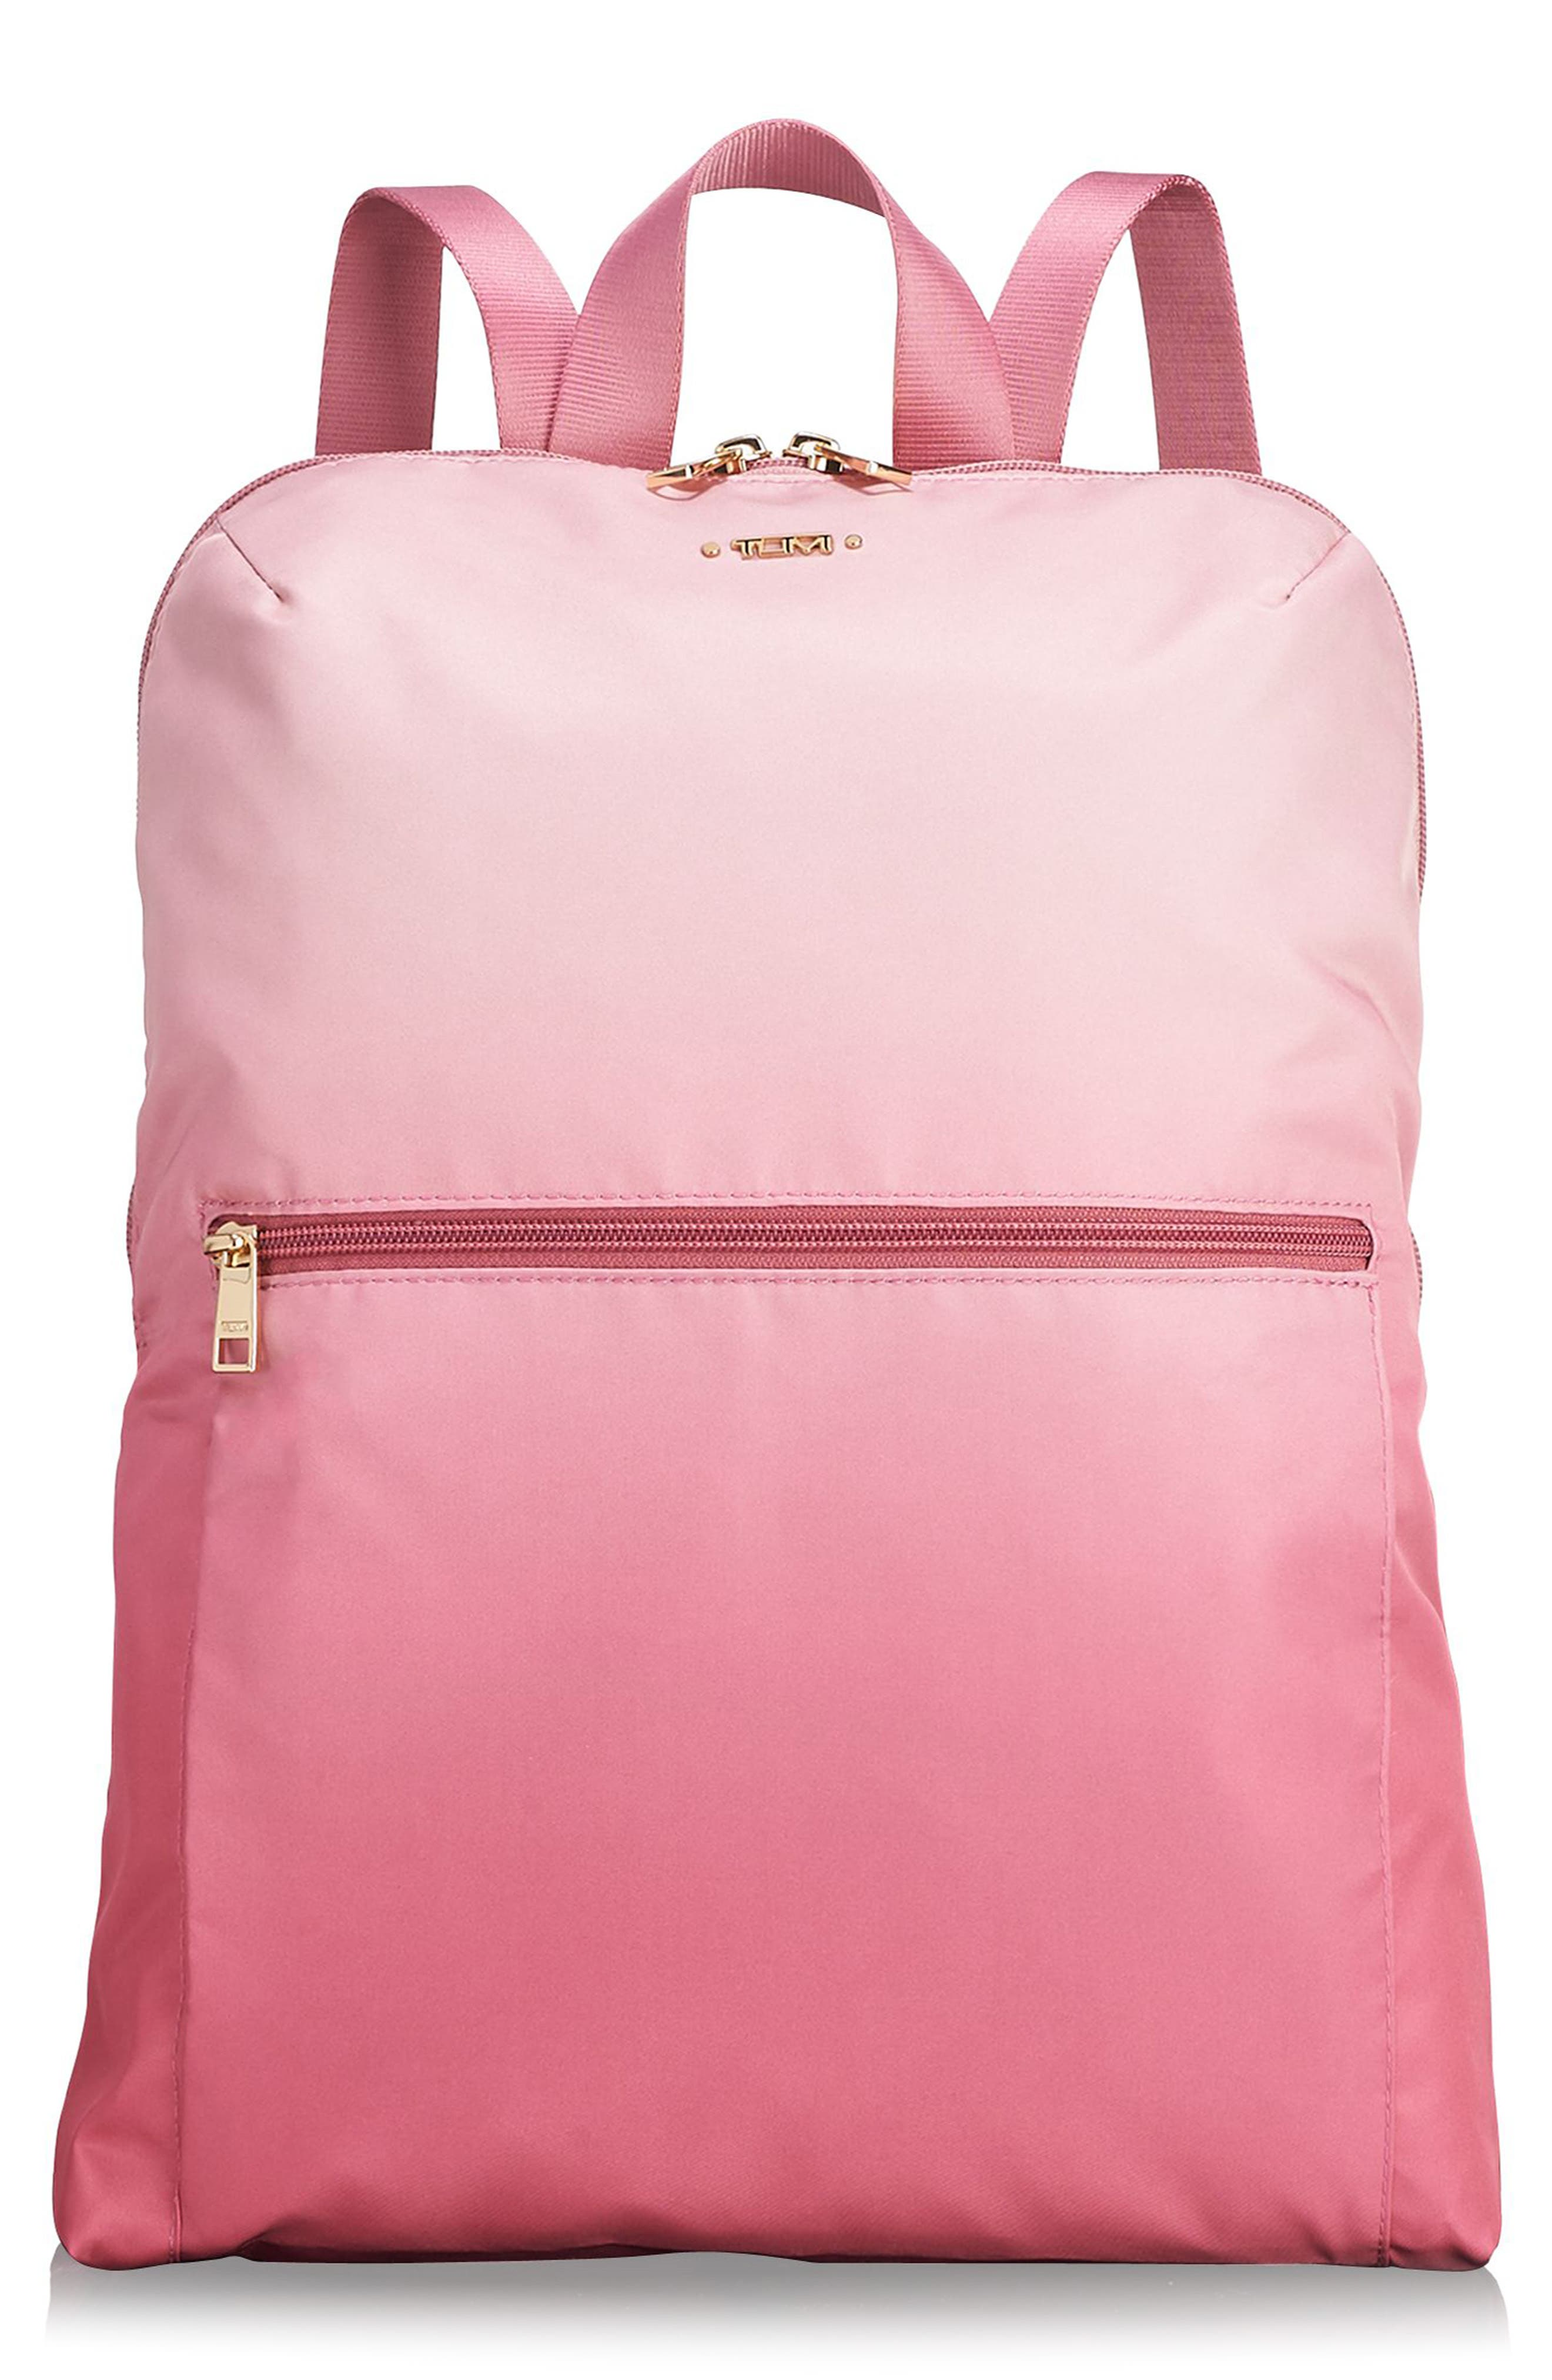 Voyageur - Just in Case Nylon Travel Backpack,                             Main thumbnail 1, color,                             PINK OMBRE